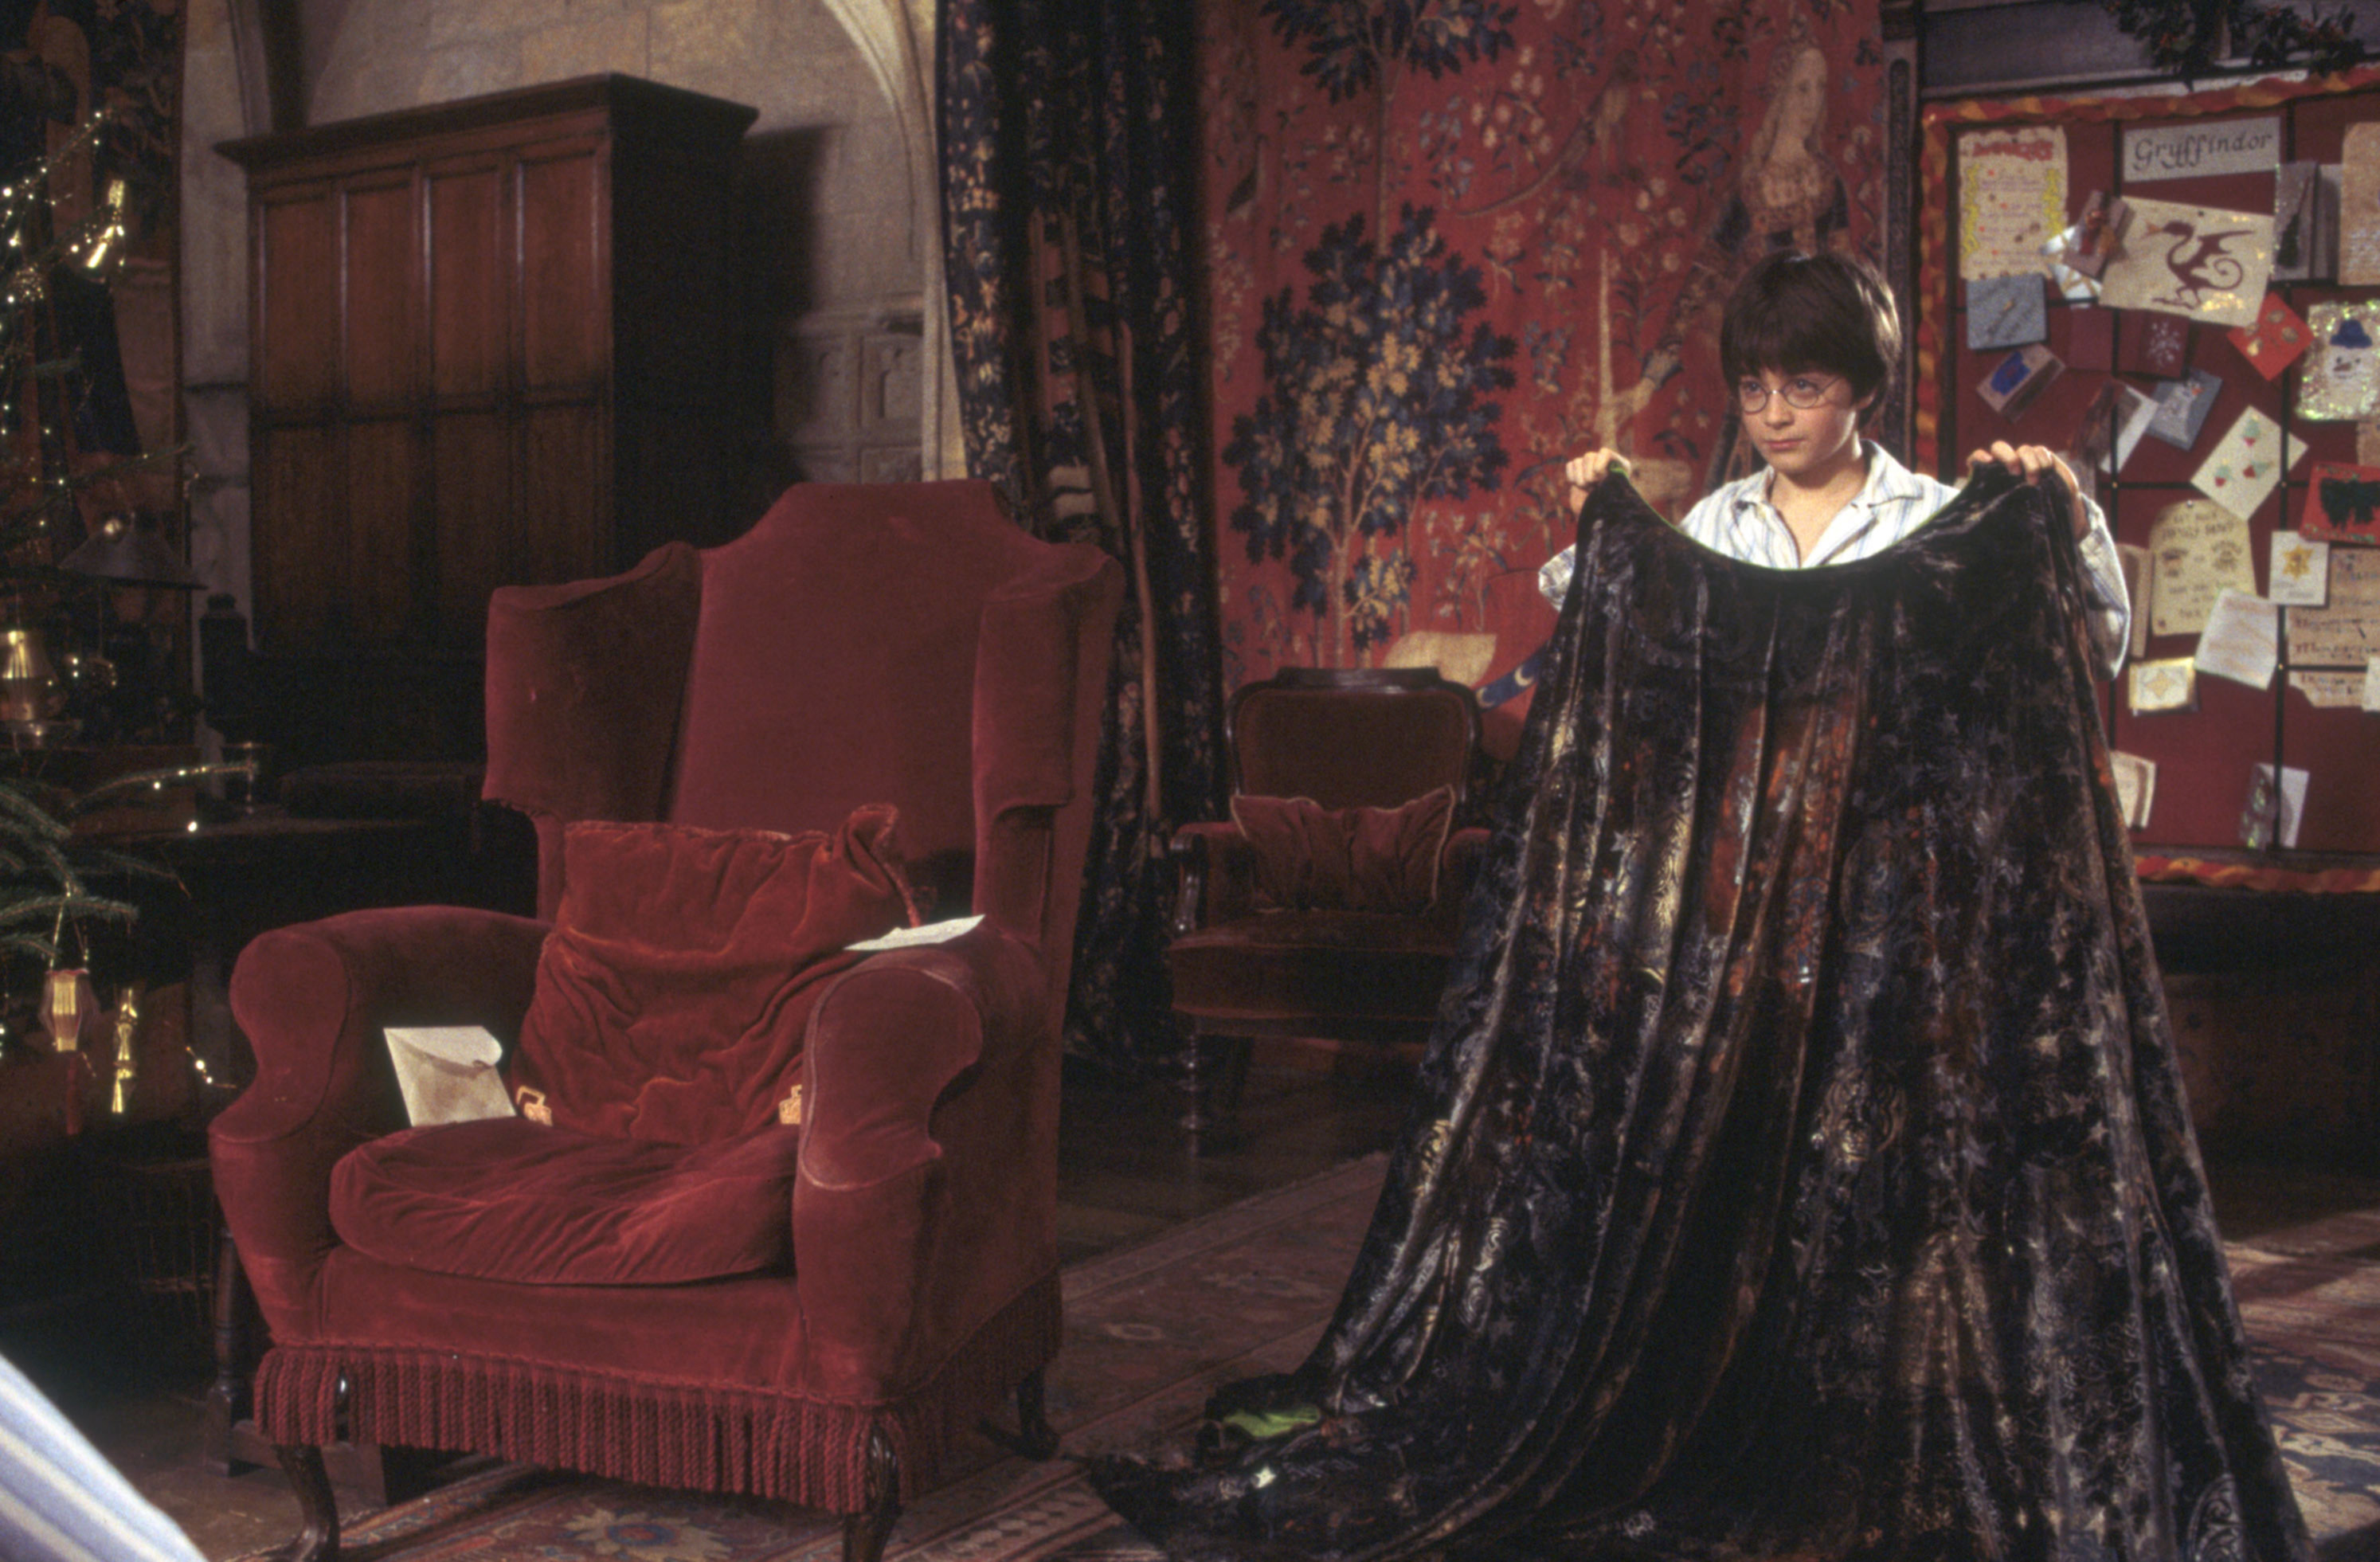 Harry holding the invisibility cloak